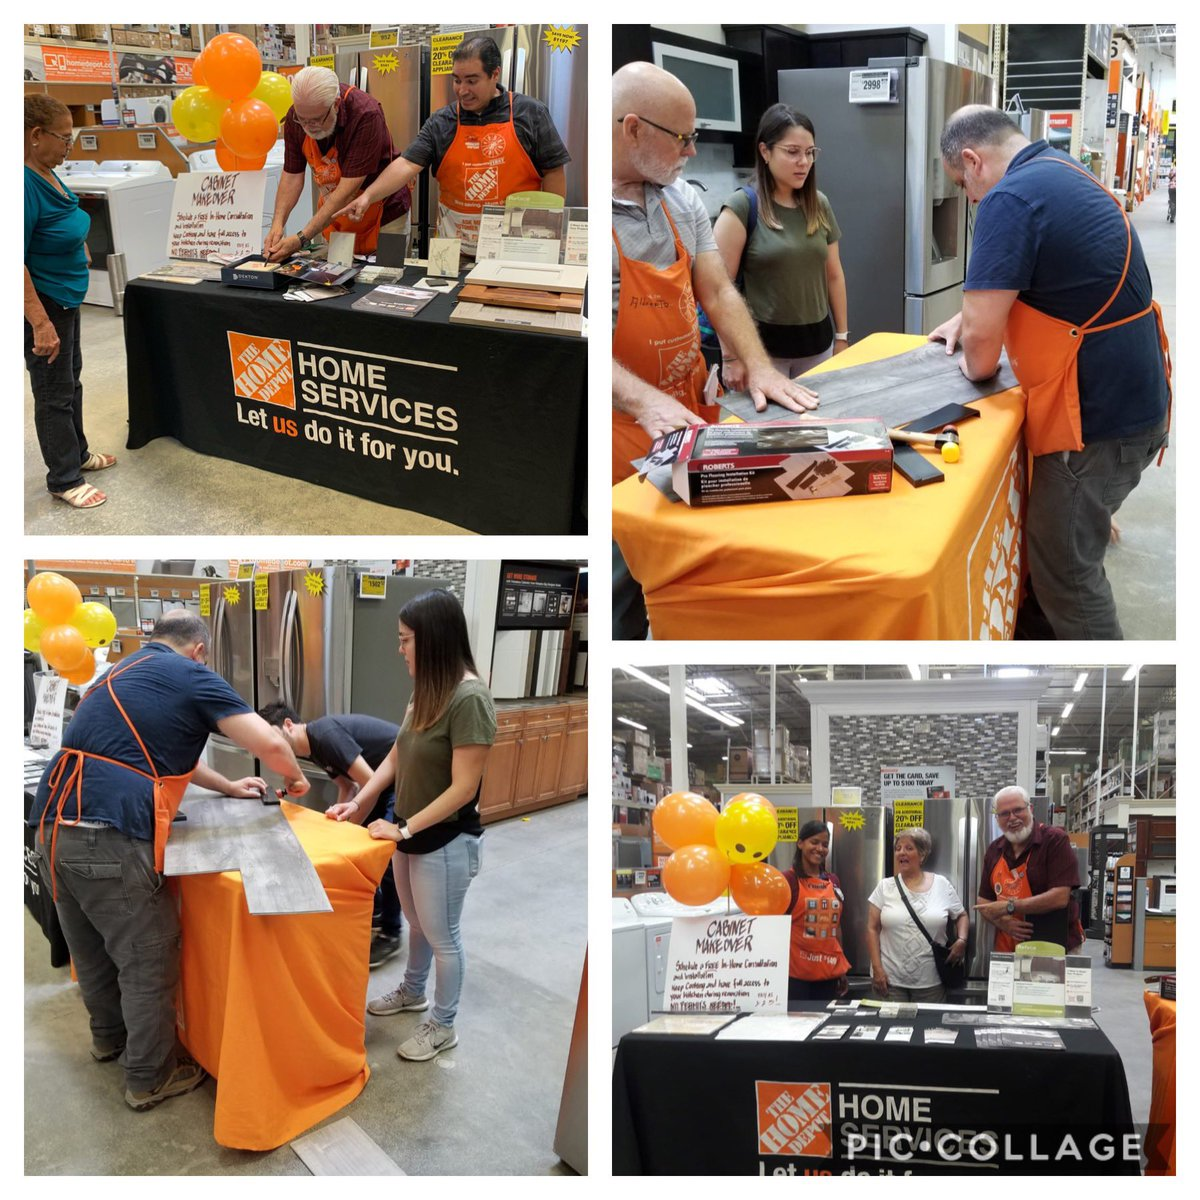 A quick One time Stop to Learn about Flooring, Countertops and Cabinet MakeOver !! Our customers Enjoyed it and we had a great day driving Sales !! #Workshops #OrangePromise #1RegionSFL<br>http://pic.twitter.com/7B2RnzoEr5